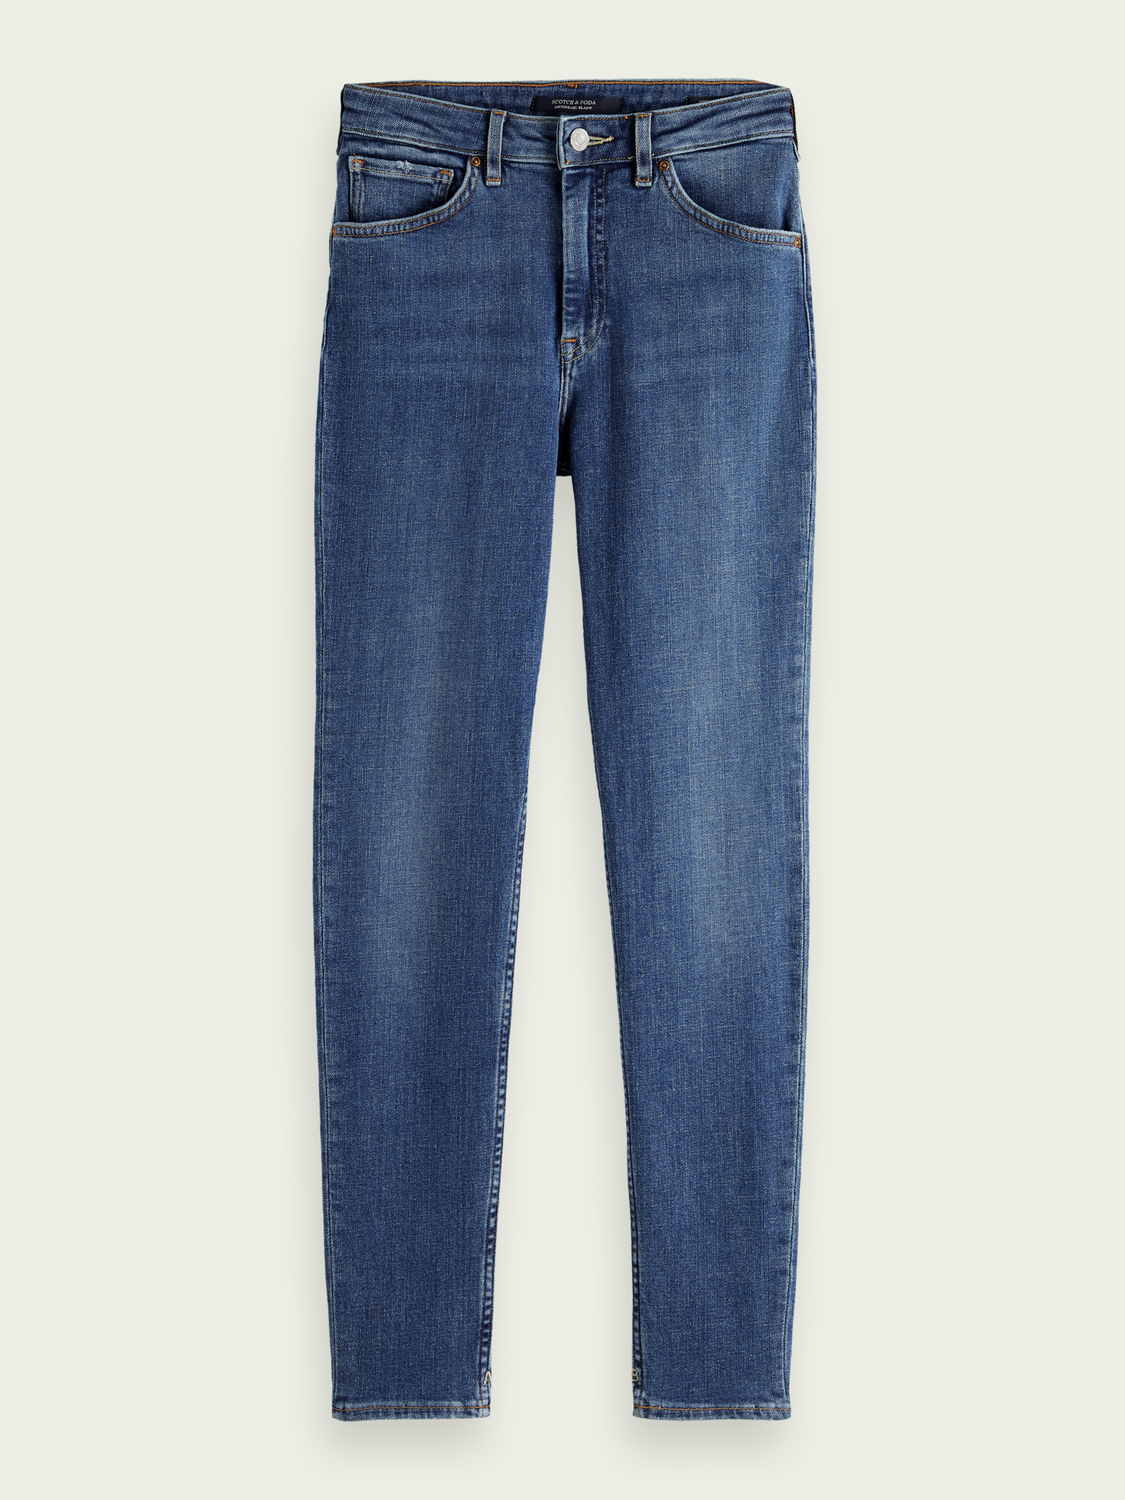 Damen Haut Stretch-Jeans im Used-Look – Time After Time